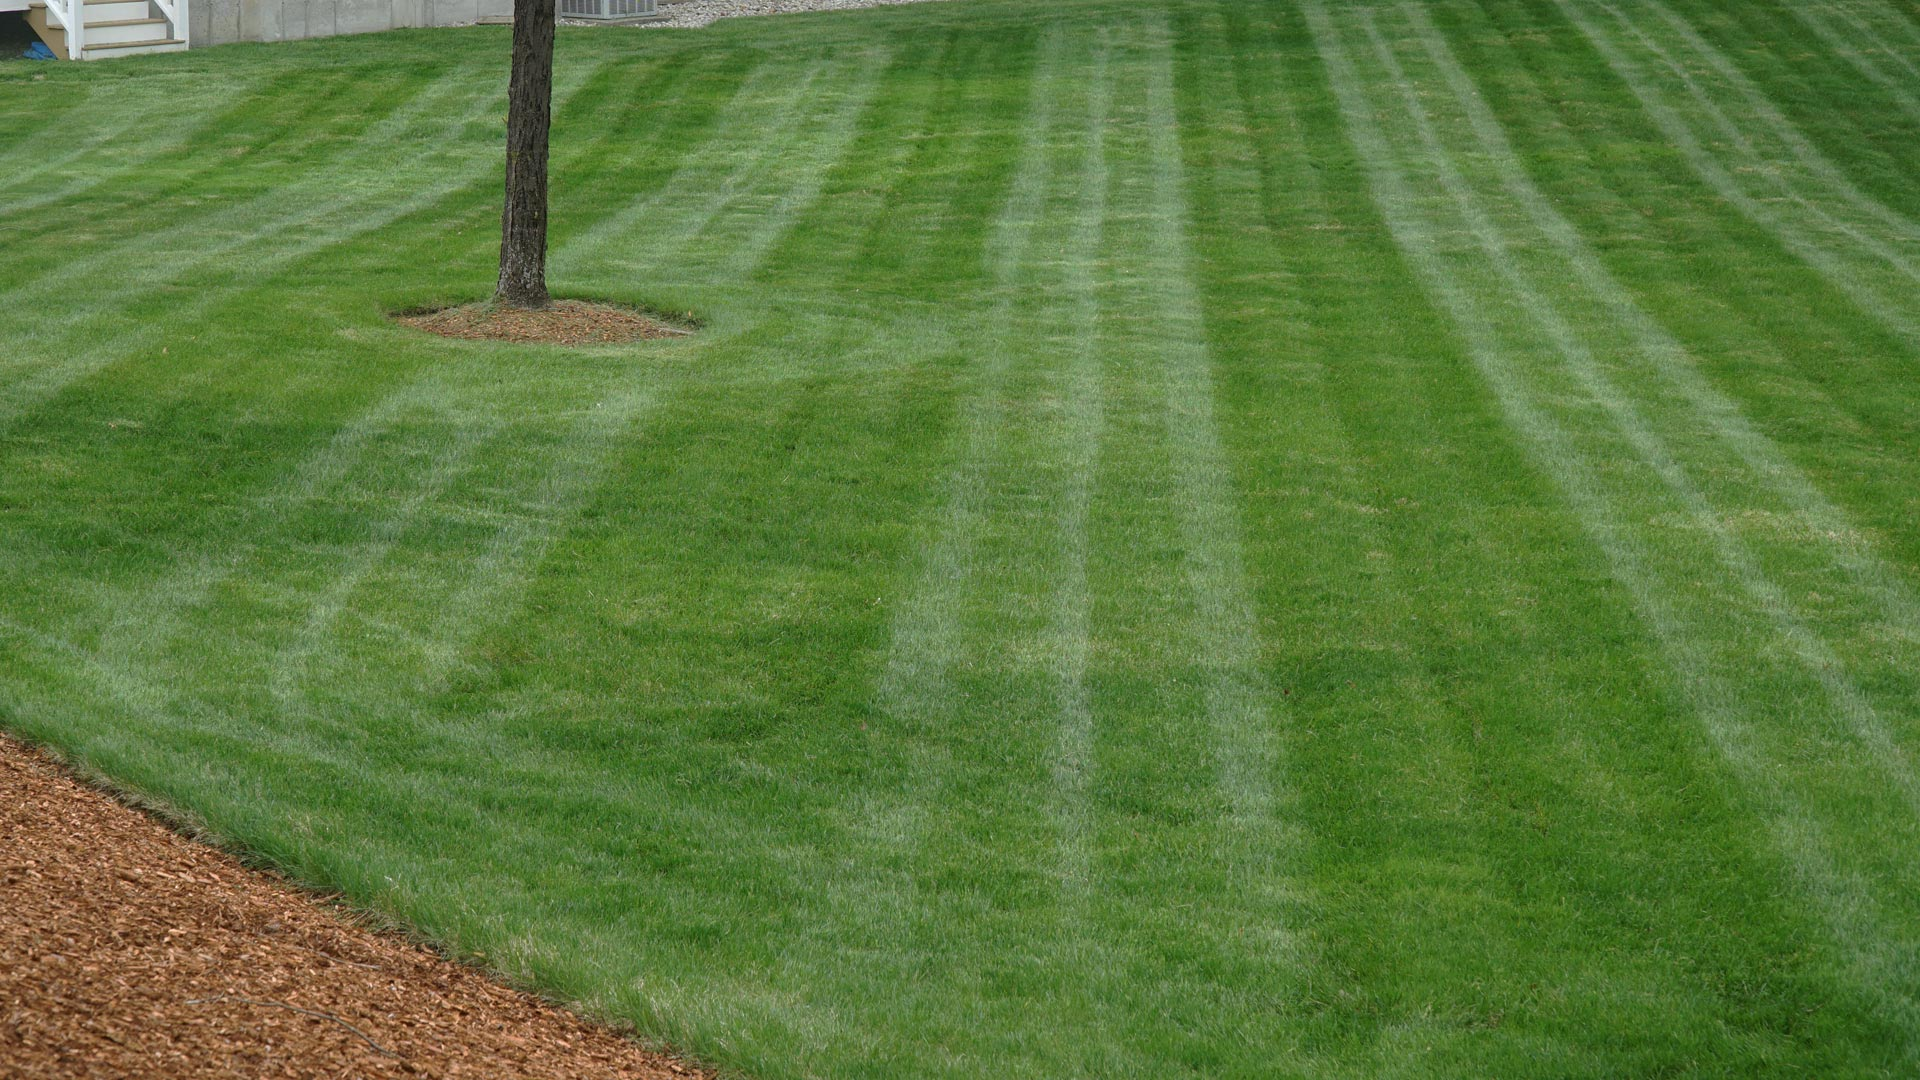 Well maintained lawn mowed with diagonal lawn striping.